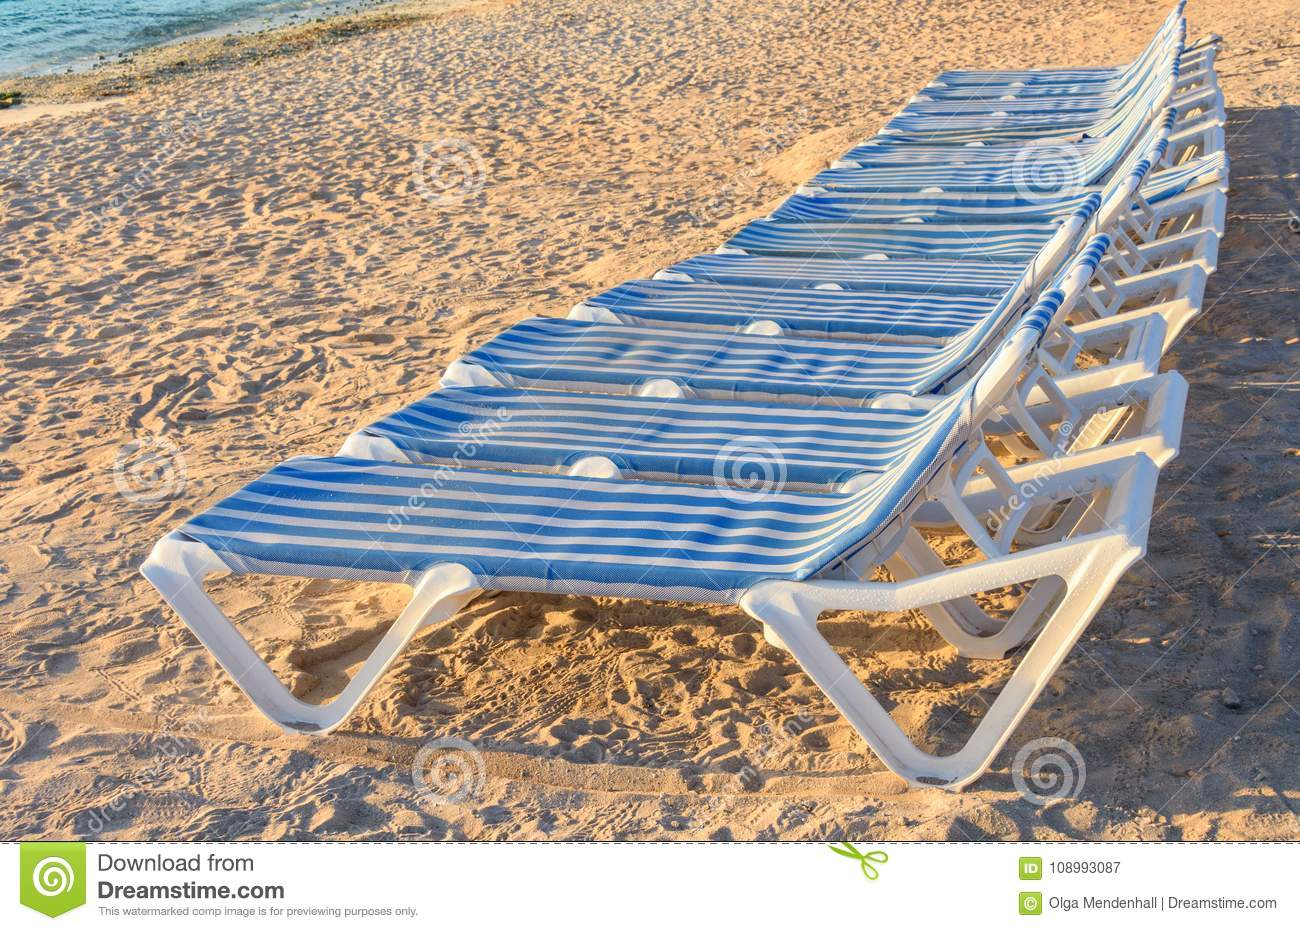 Stupendous Range Of Blue And White Striped Lounge Chairs On A Sandy Caraccident5 Cool Chair Designs And Ideas Caraccident5Info